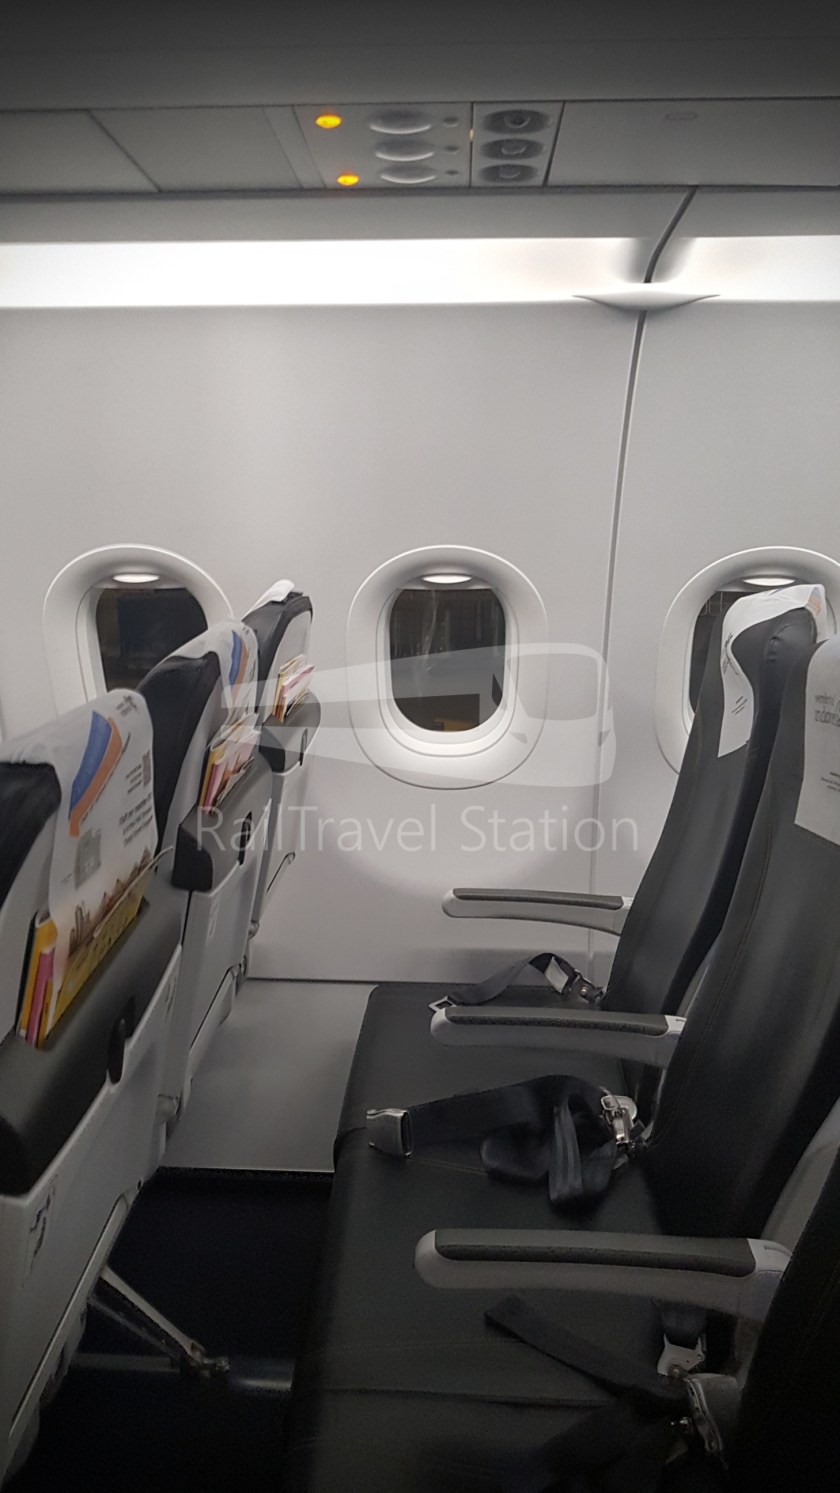 Scoot TR981 HKG SIN A320neo 010